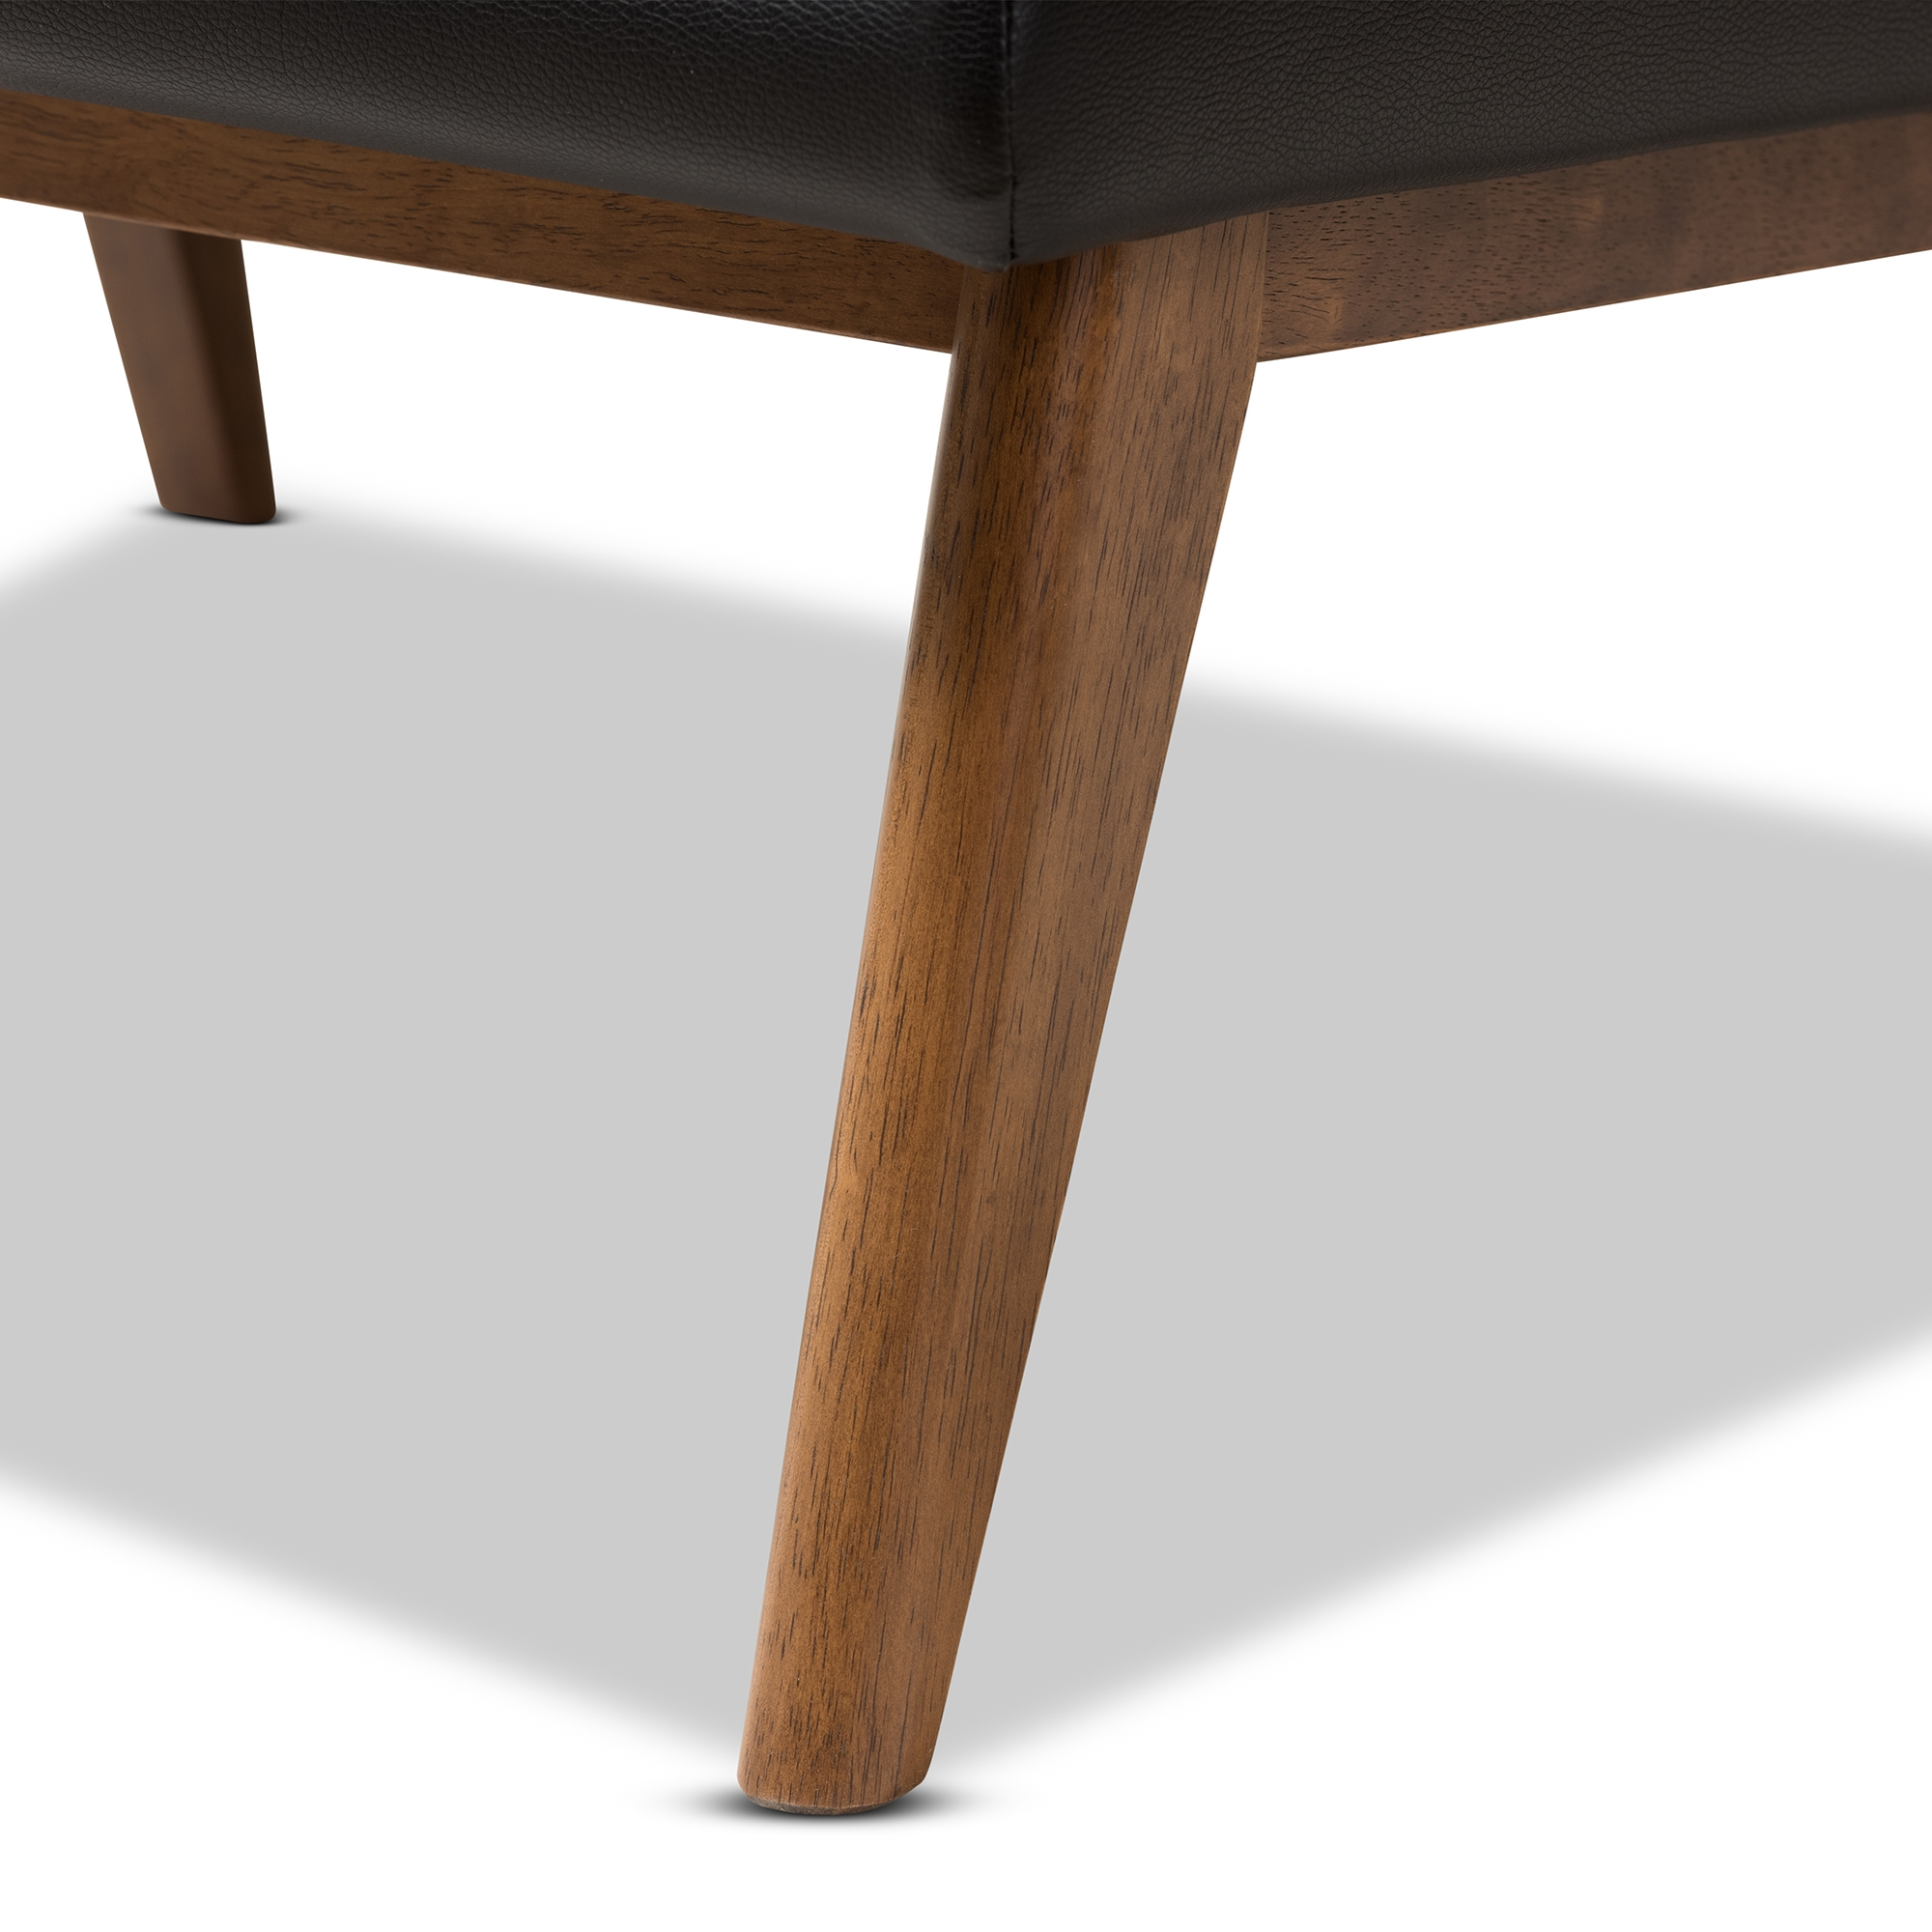 ... Baxton Studio Annetha Mid Century Modern Black Faux Leather Upholstered  Walnut Finished Wood Chair And ...